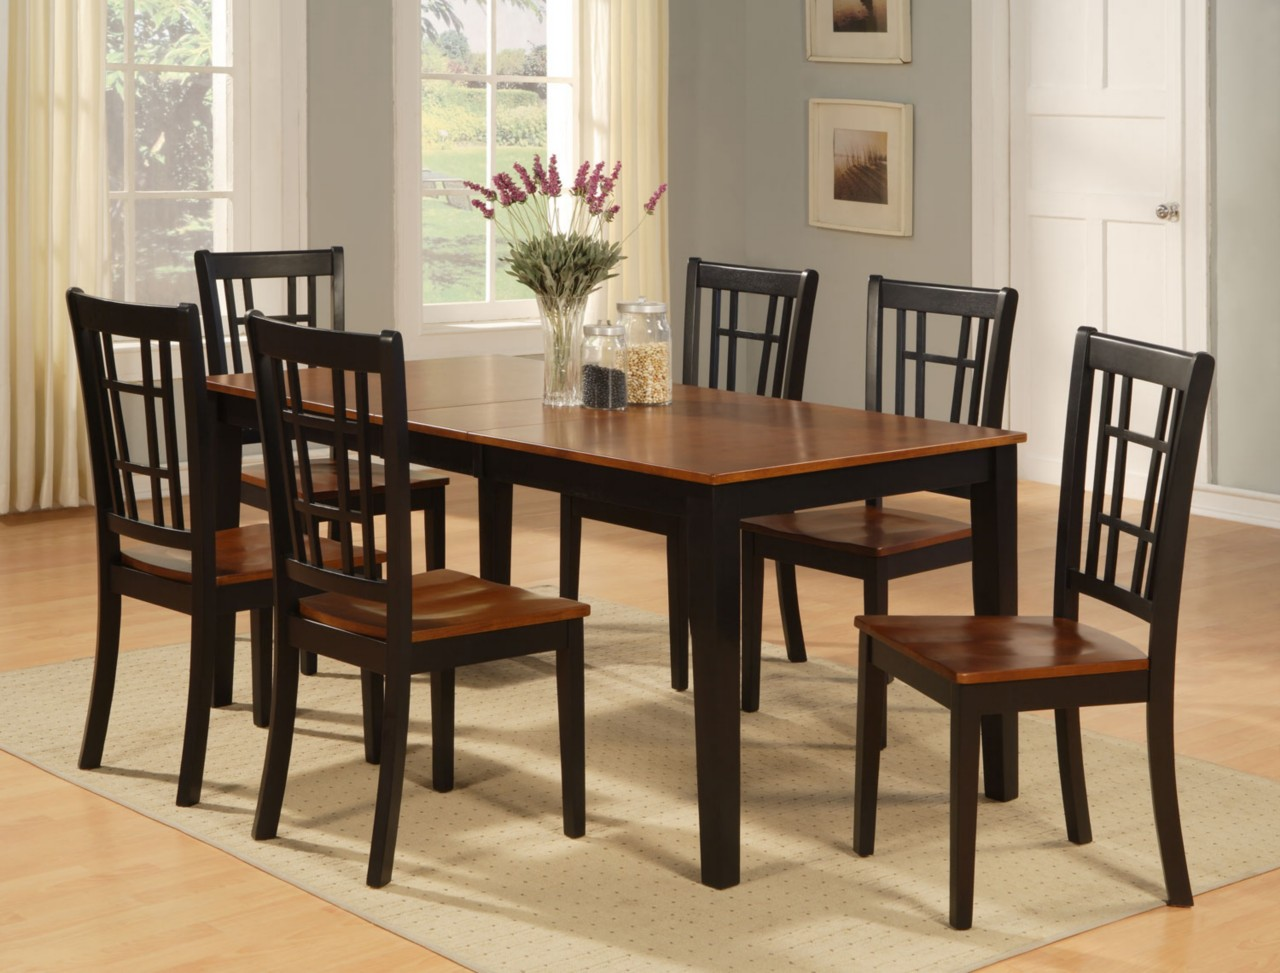 details about dinette kitchen dining room set 7pc table and 6 chairs